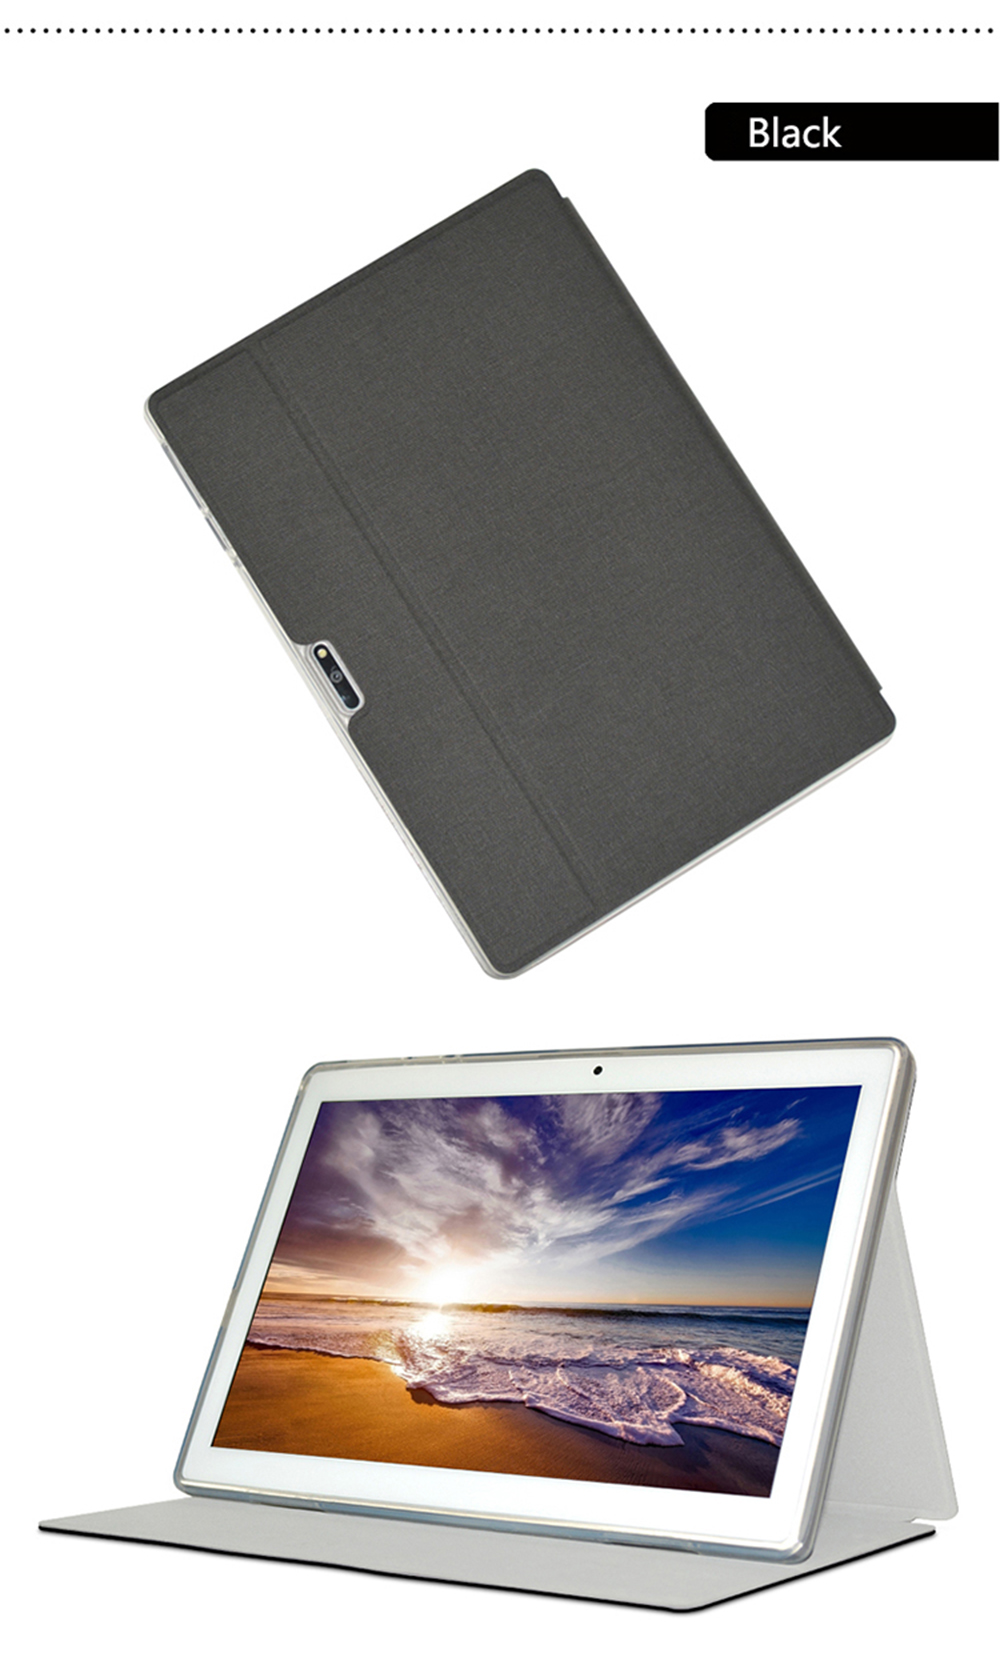 OCUBE Protective Tablet Case for Teclast M30- Black